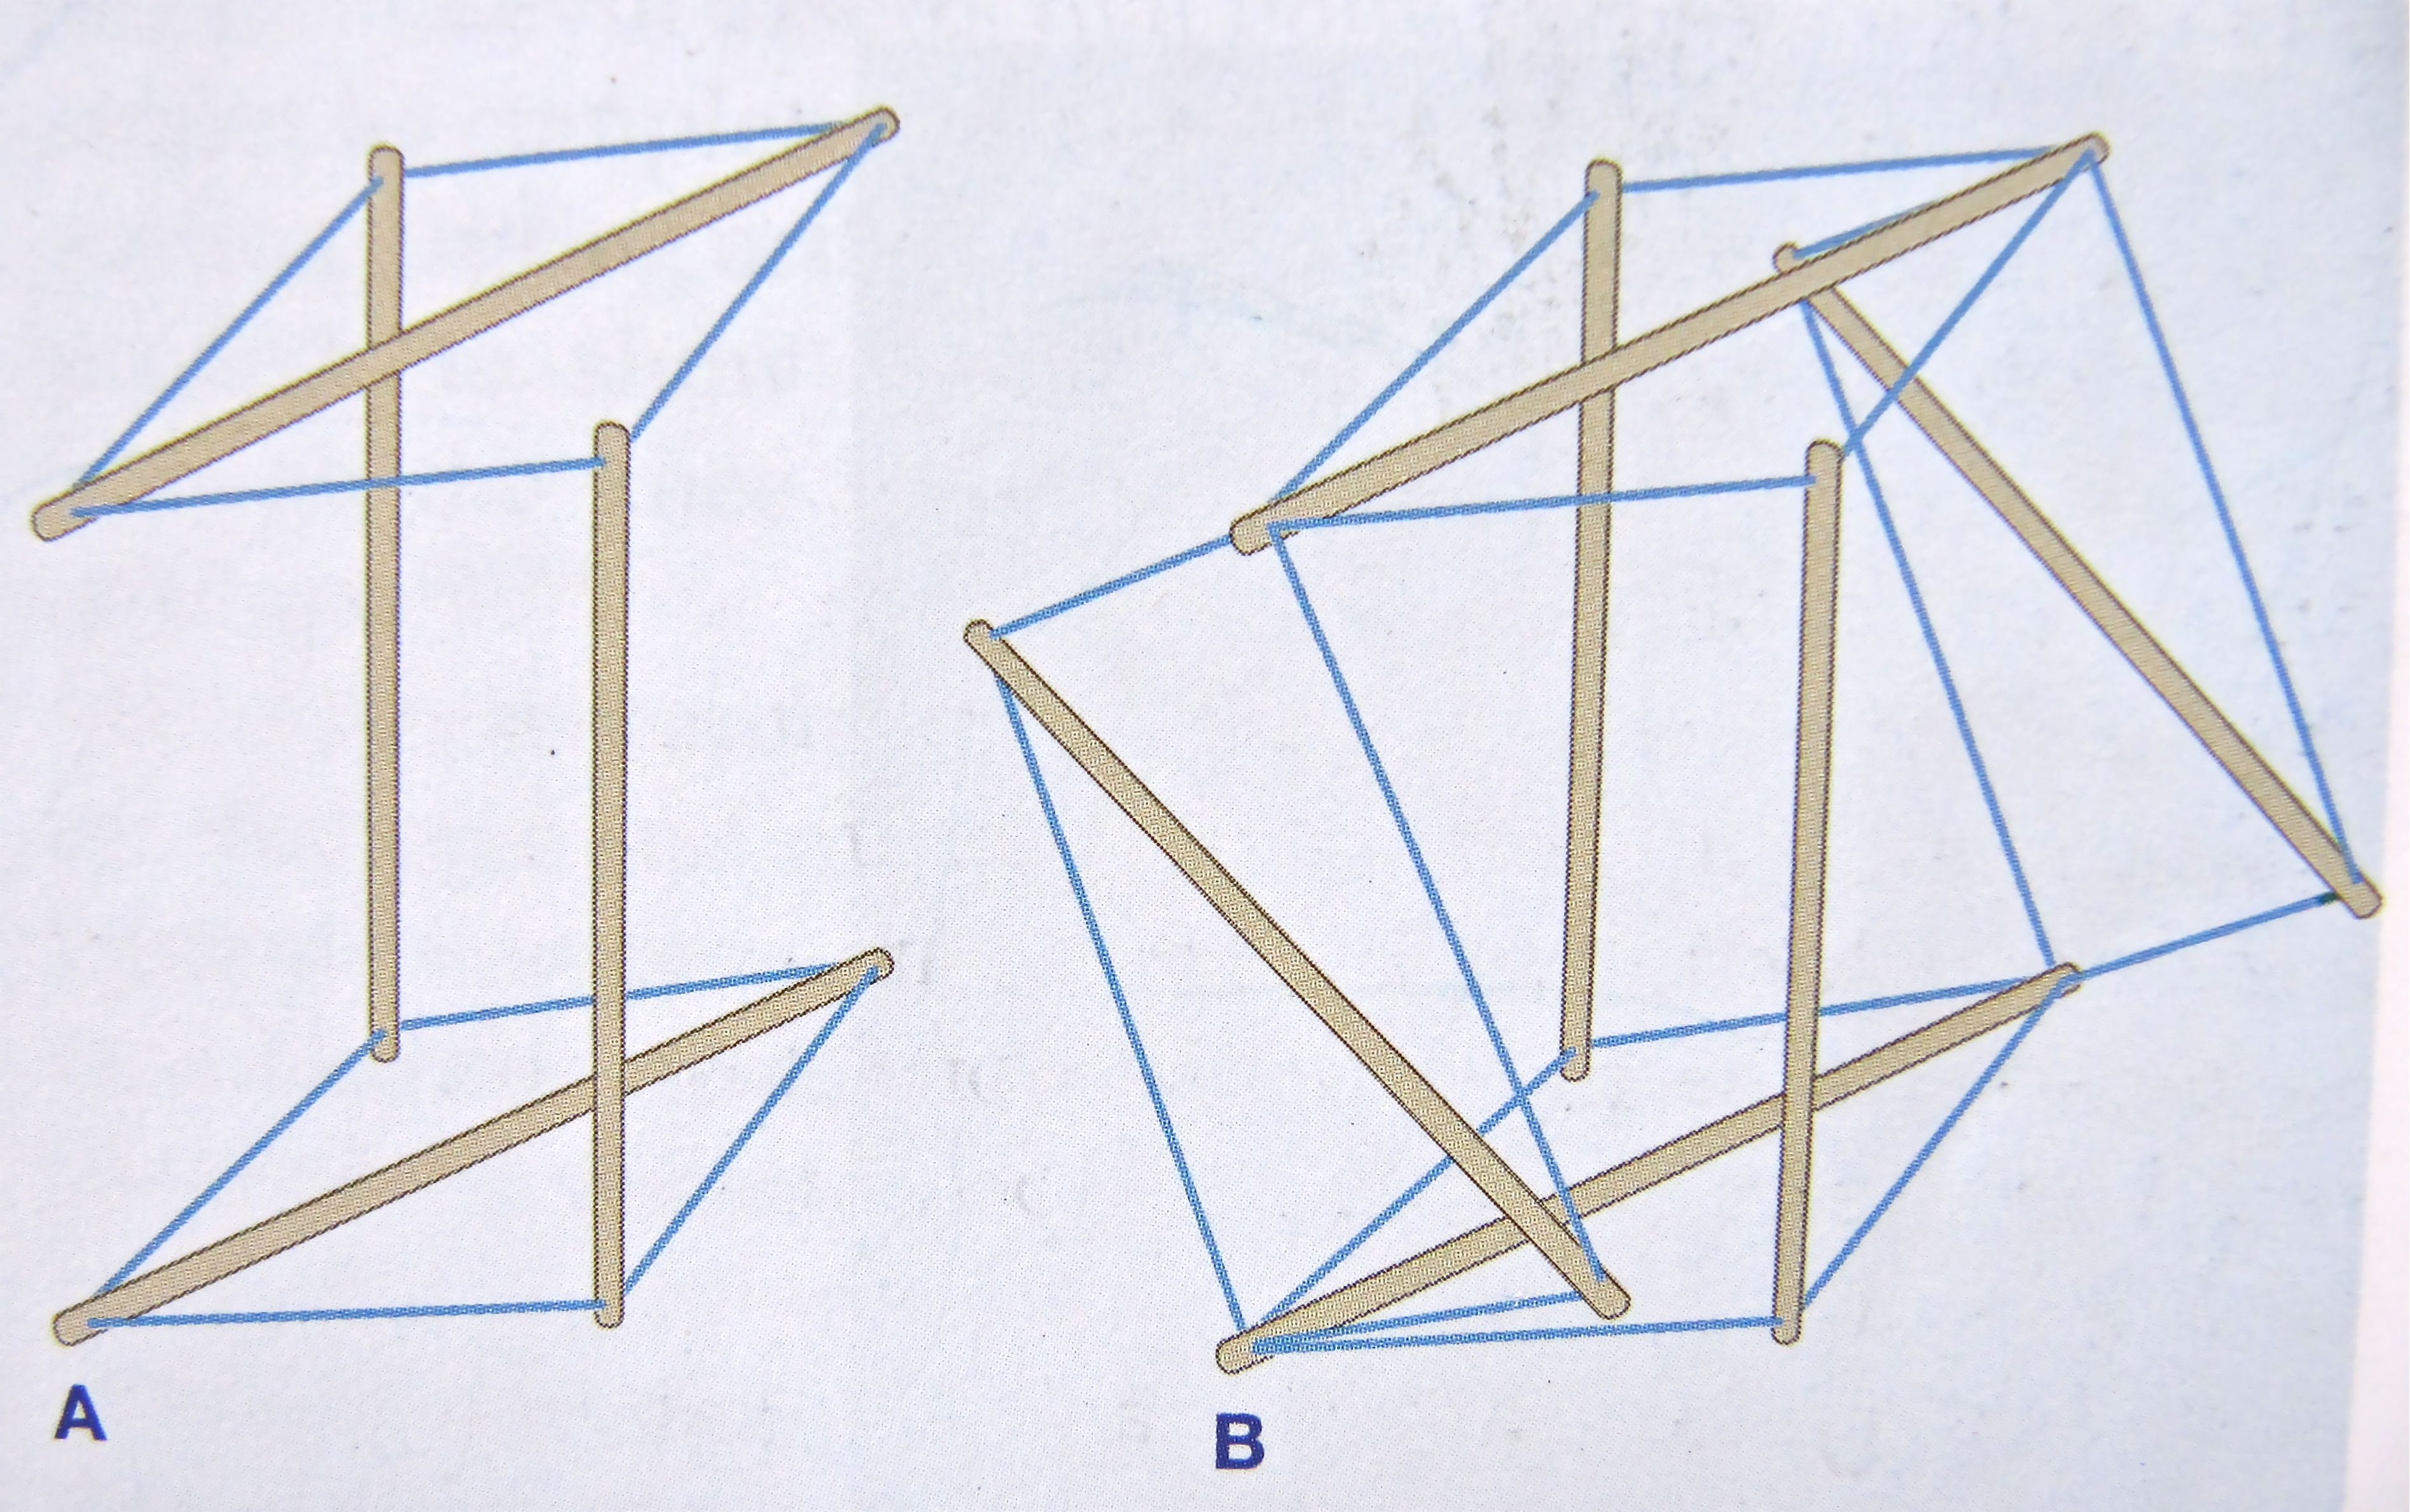 Notes On Anatomy And Physiology Getting The Feel Of Tensegrity